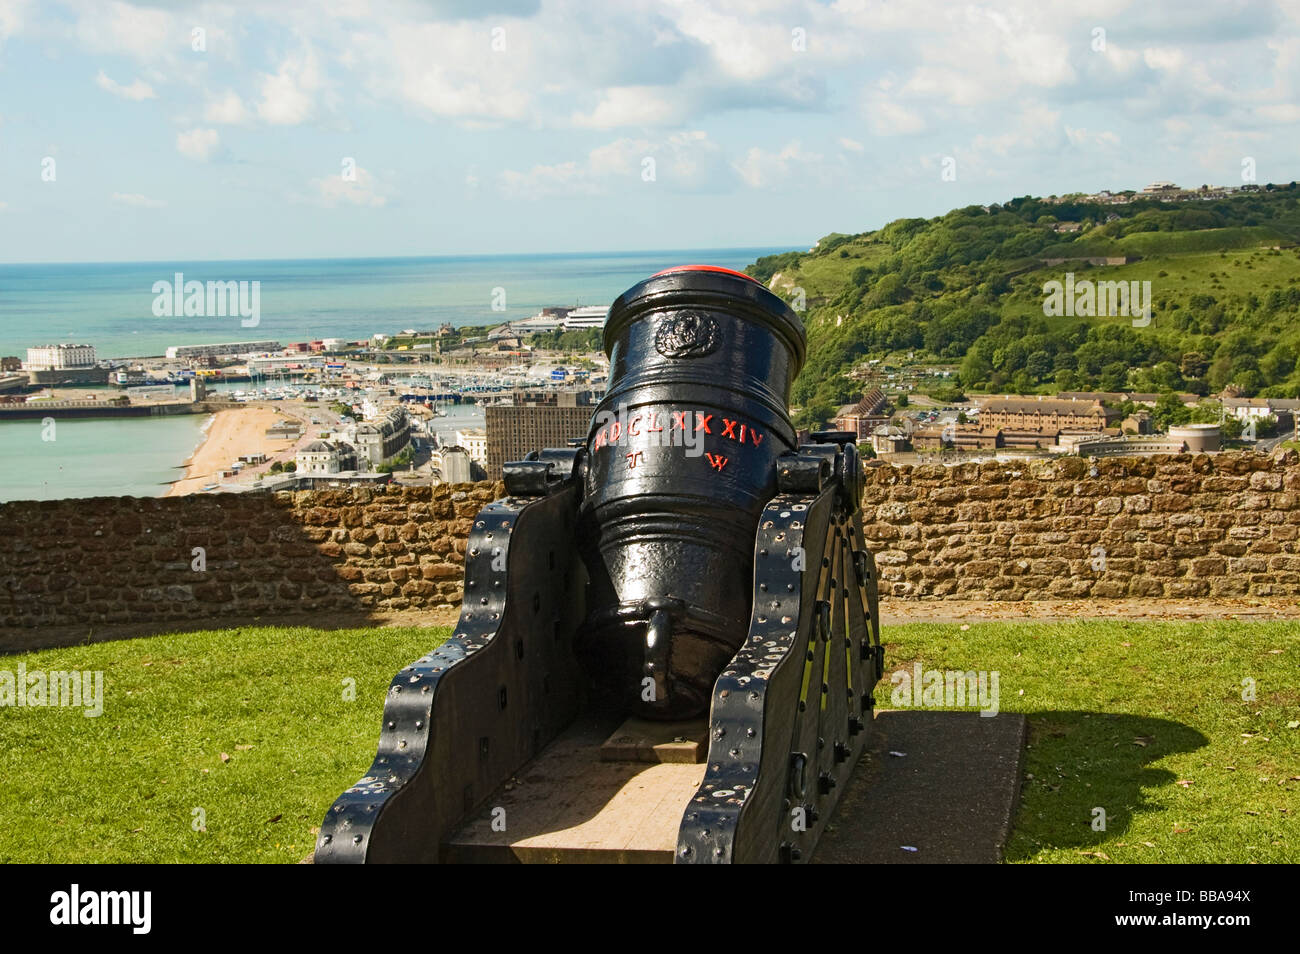 http://c7.alamy.com/comp/BBA94X/mortar-cannon-dover-kent-south-england-england-great-britain-BBA94X.jpg